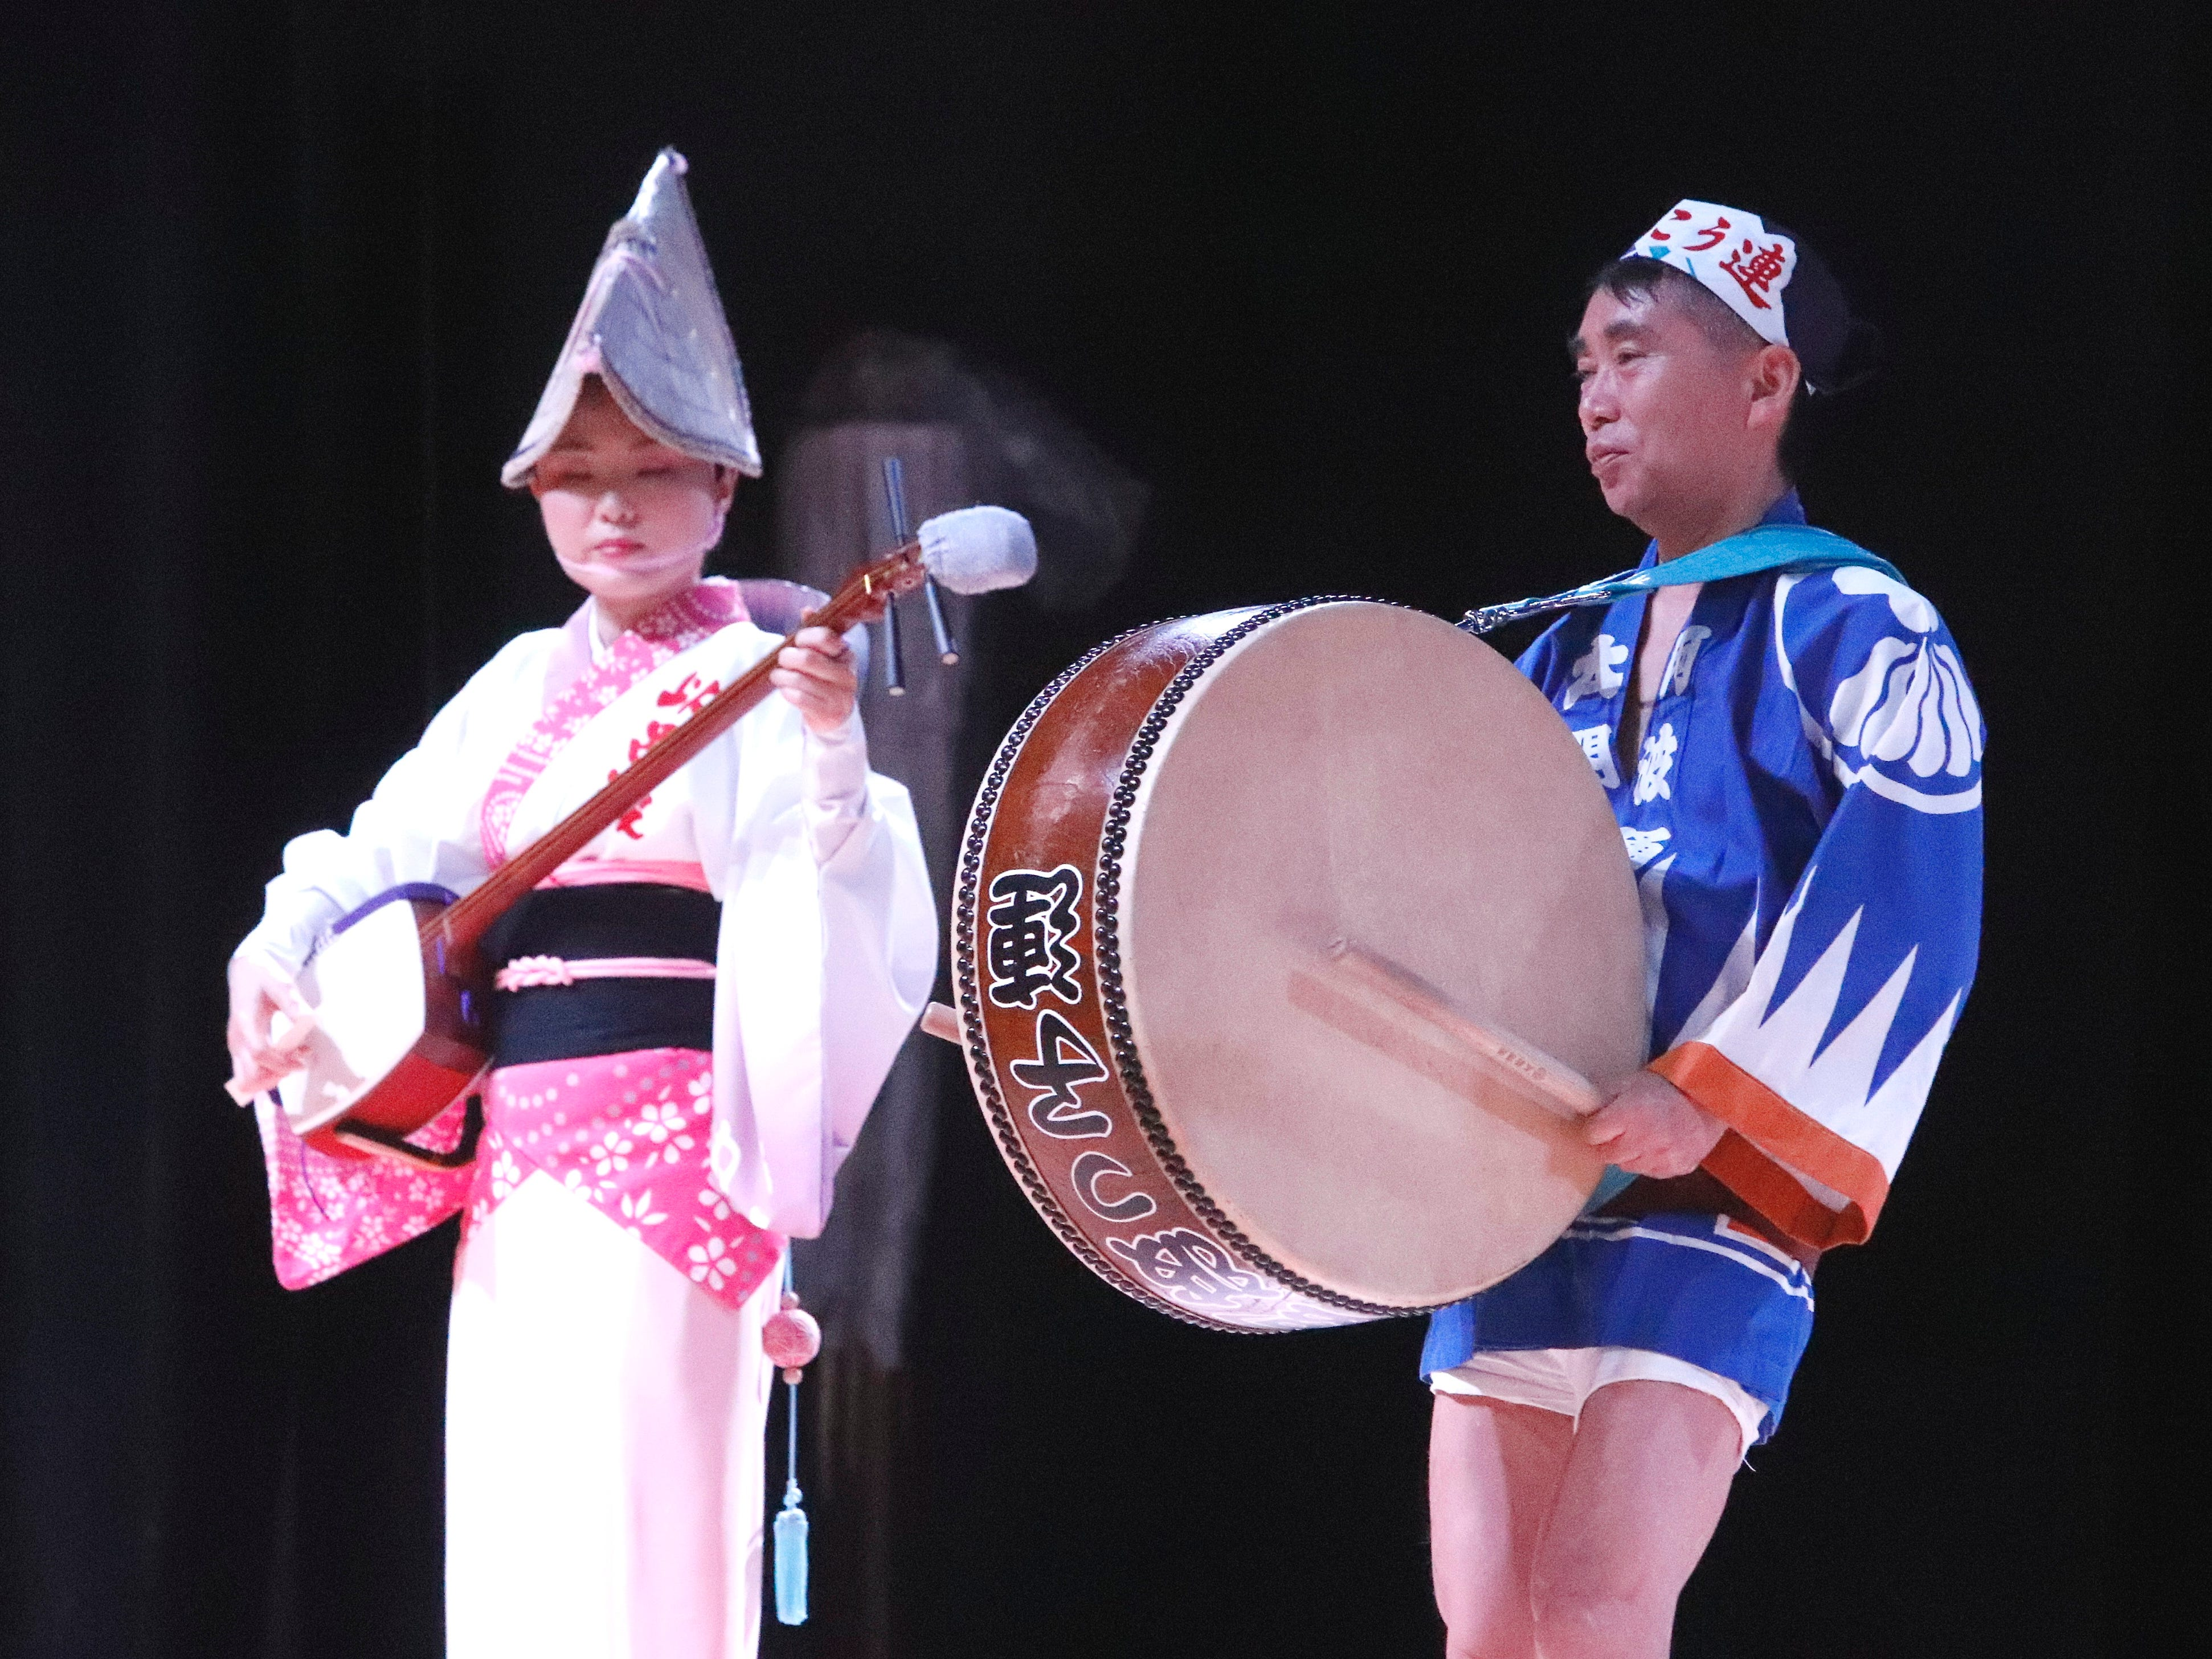 Awa-Odori performance during the Cherry Blossom Festival at Sequoia Middle School in Redding on Saturday, April 27, 2019.